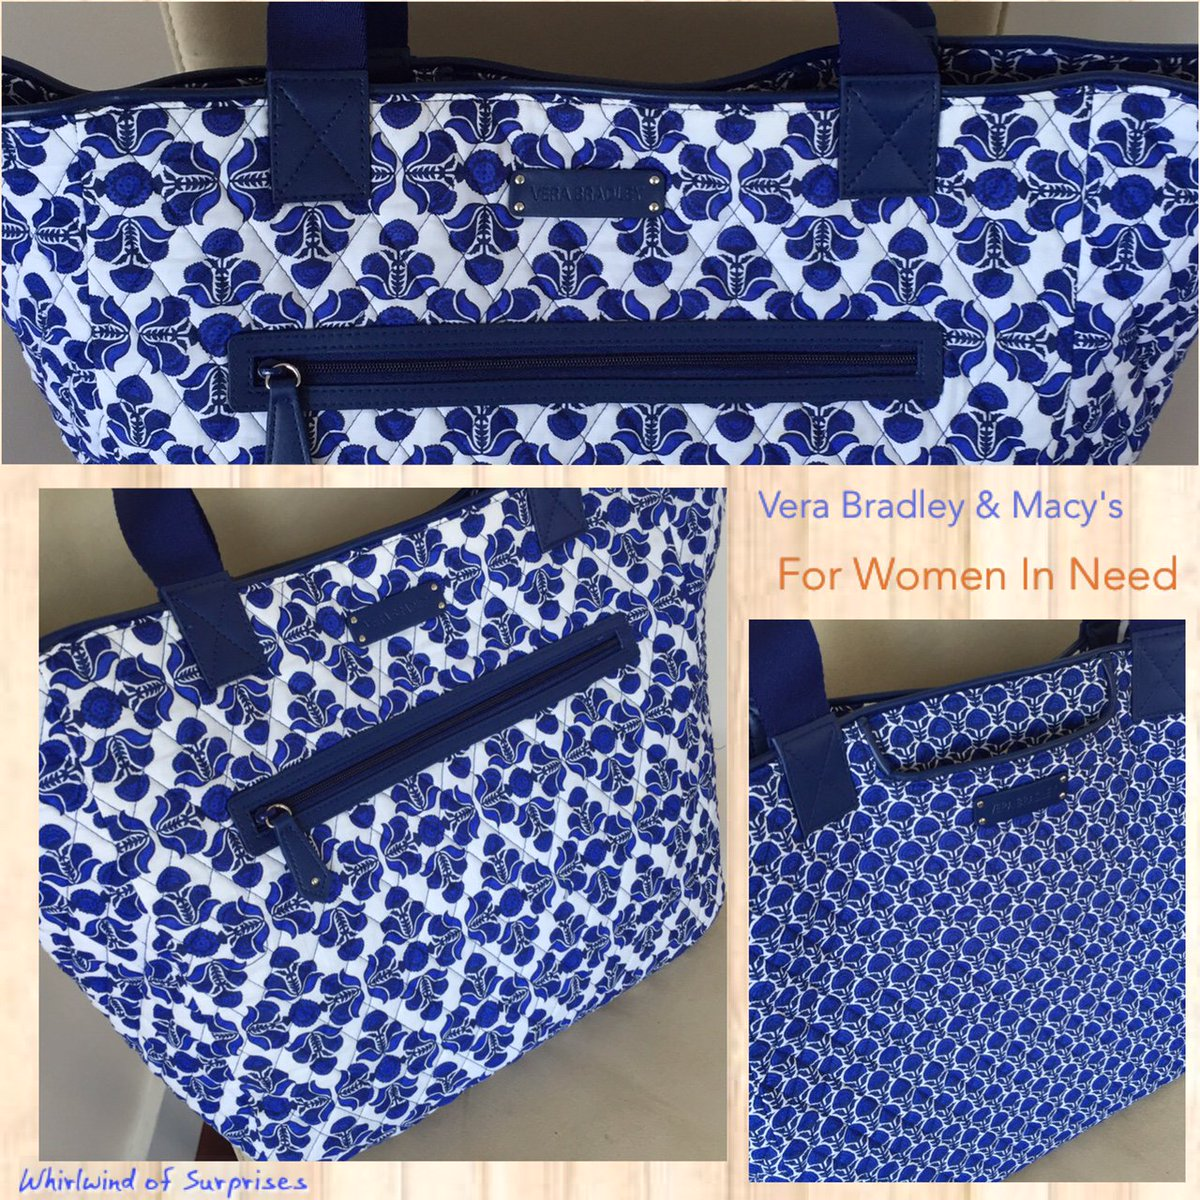 Vera Bradley and Macy's Limited Edition Tote for Mother's Day pays it forward